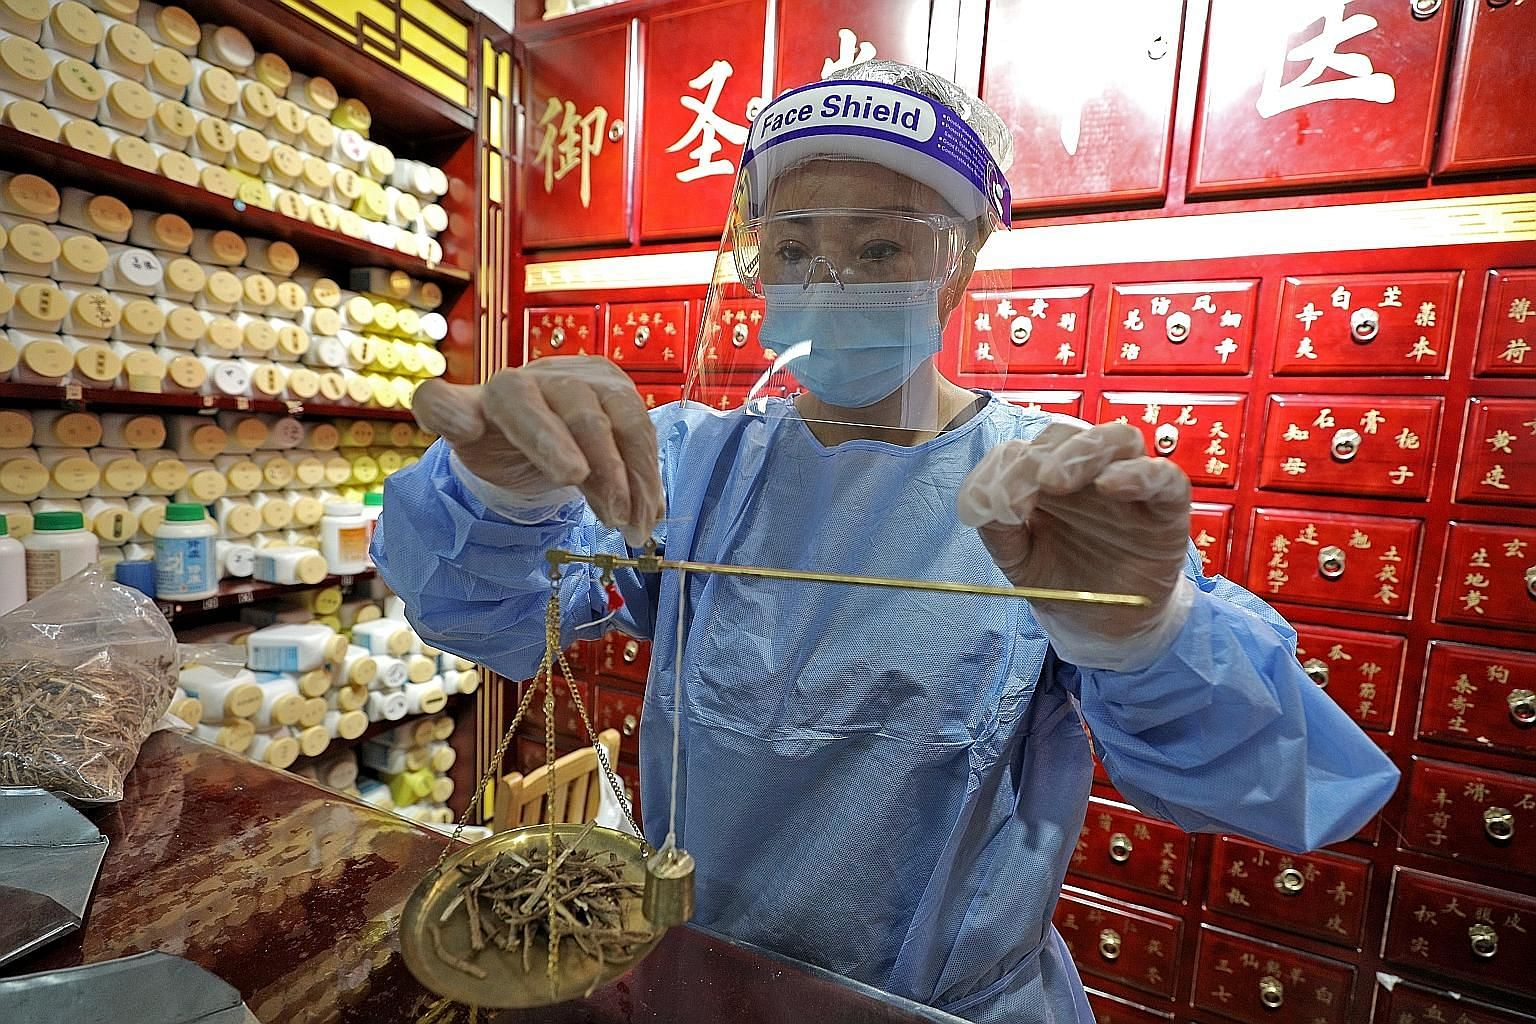 Physician Li Huarong preparing Chinese herbs for her patients on Tuesday, the first day that 130 medical halls attached to registered TCM practitioners could resume treatments and services since the start of circuit breaker measures.